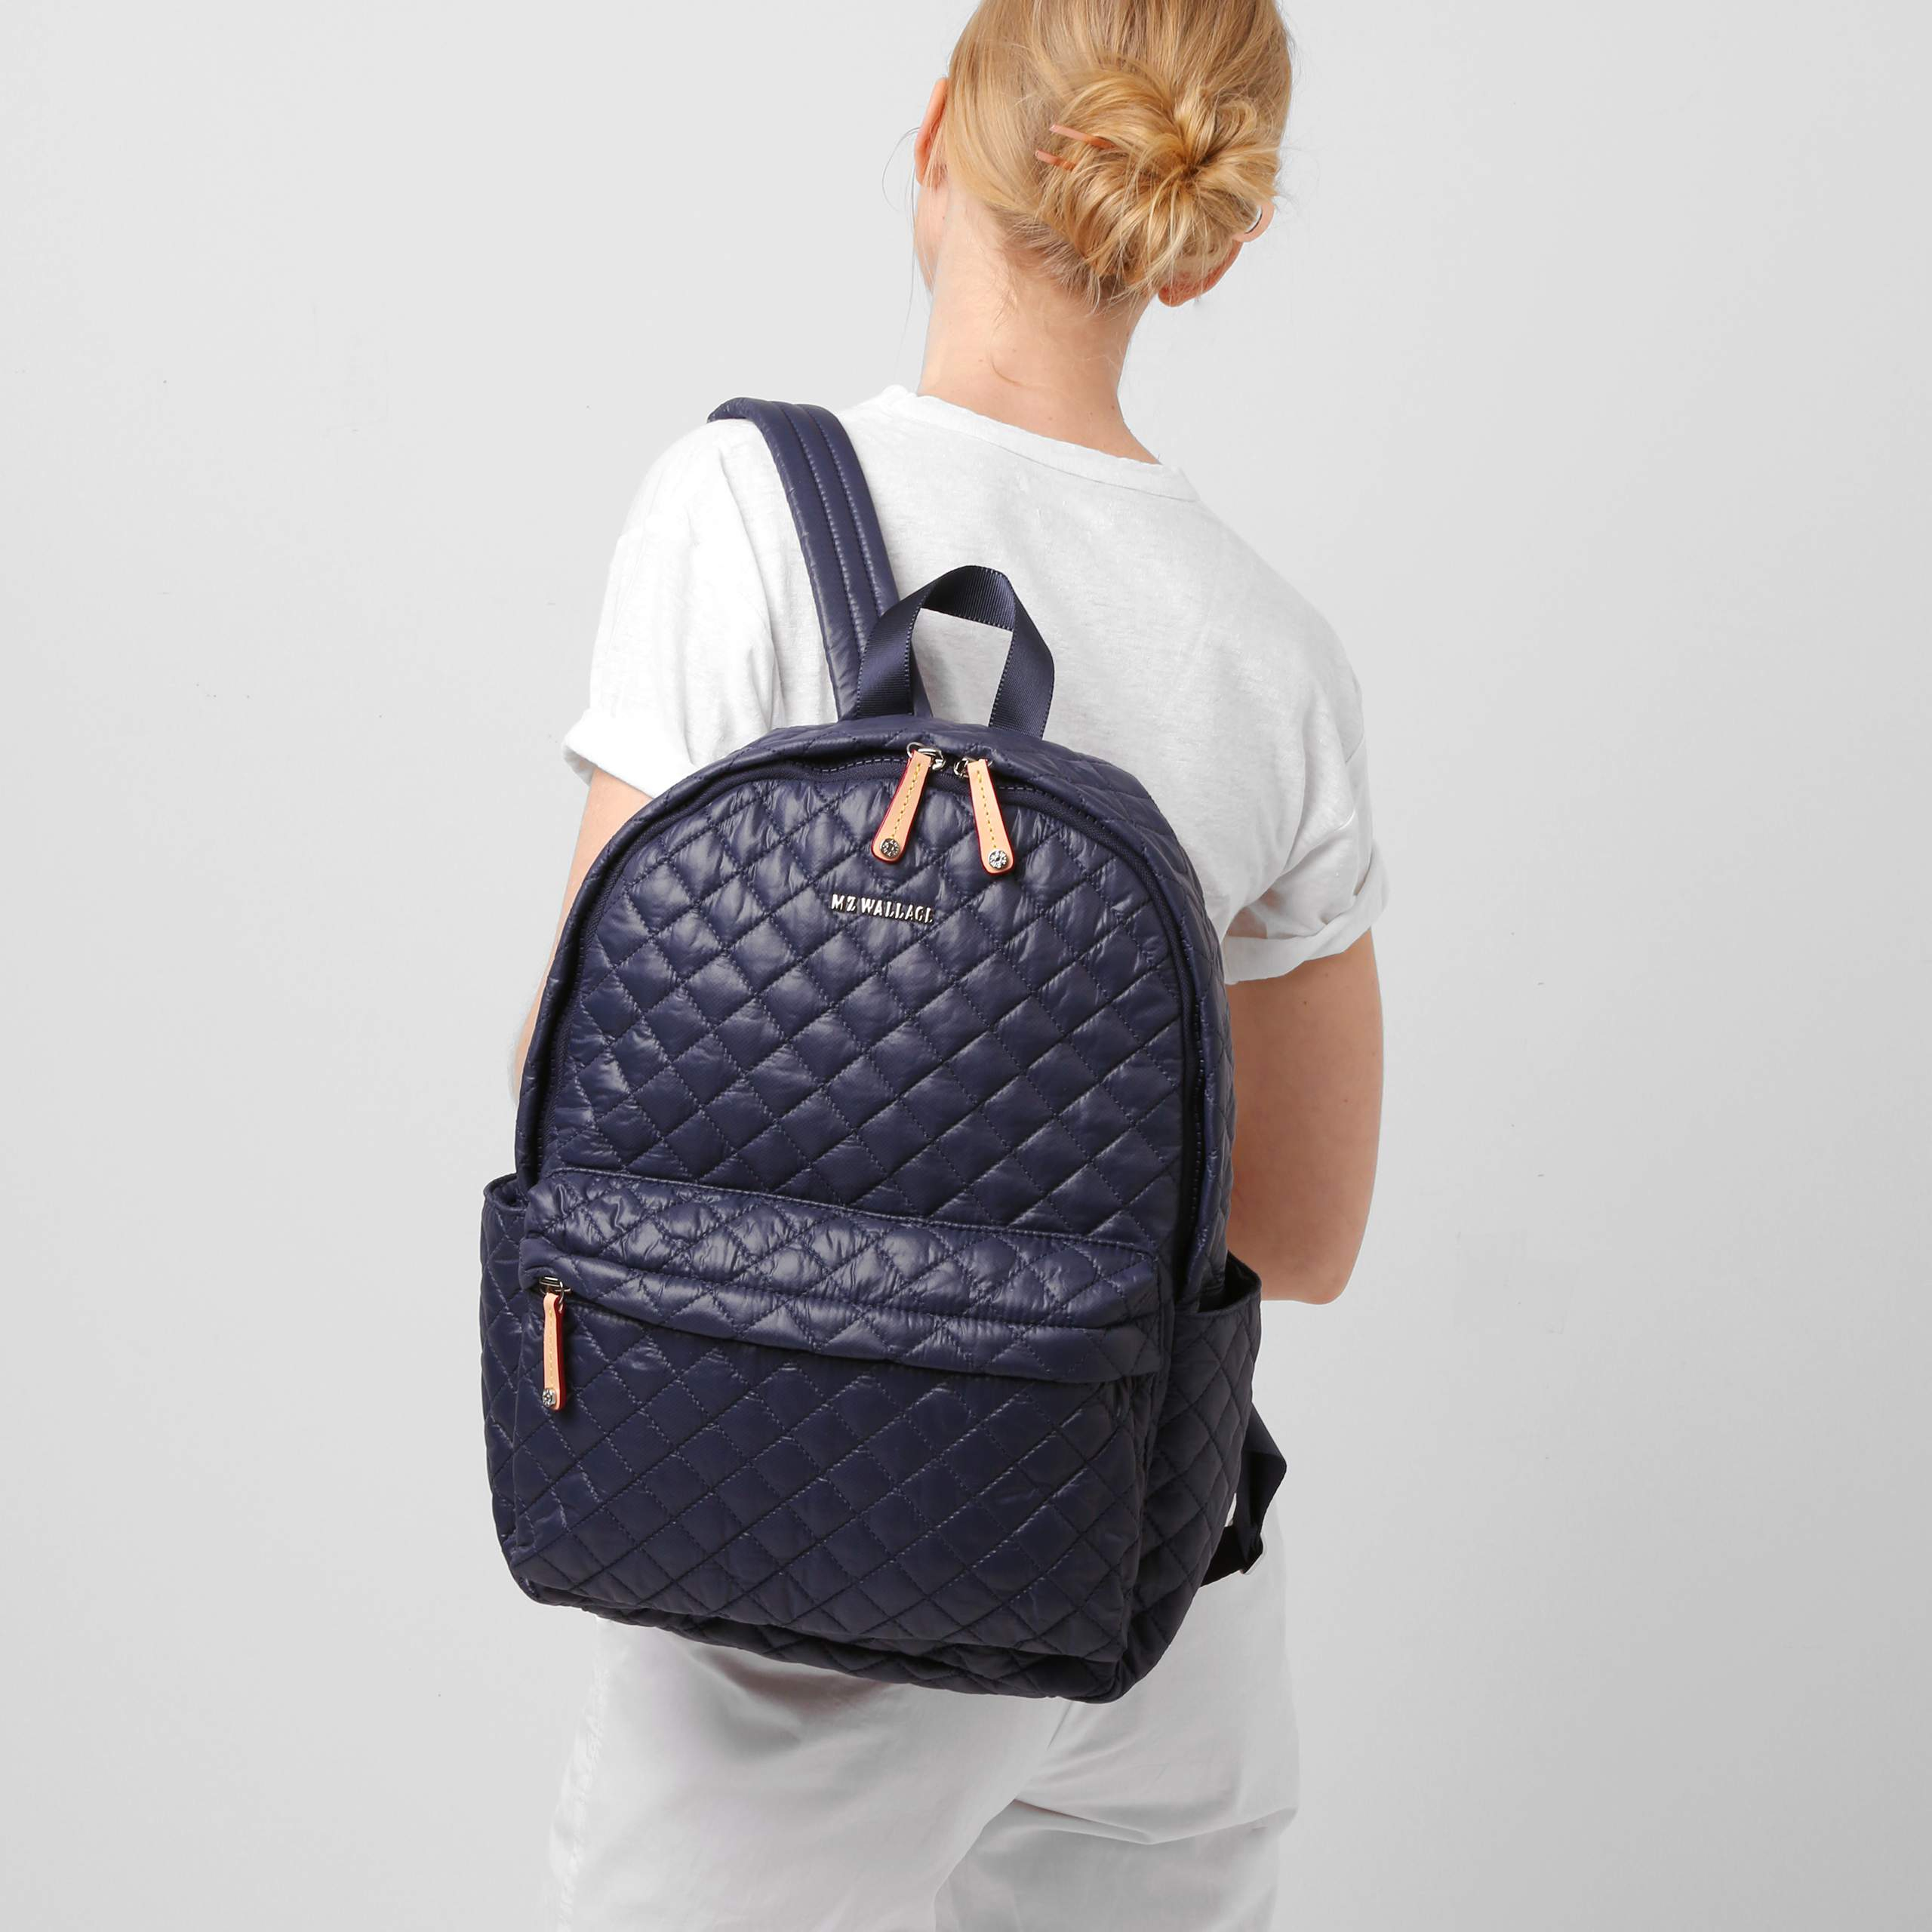 97f8a74fb3 Lyst - MZ Wallace Metro Backpack Navy Oxford in Blue